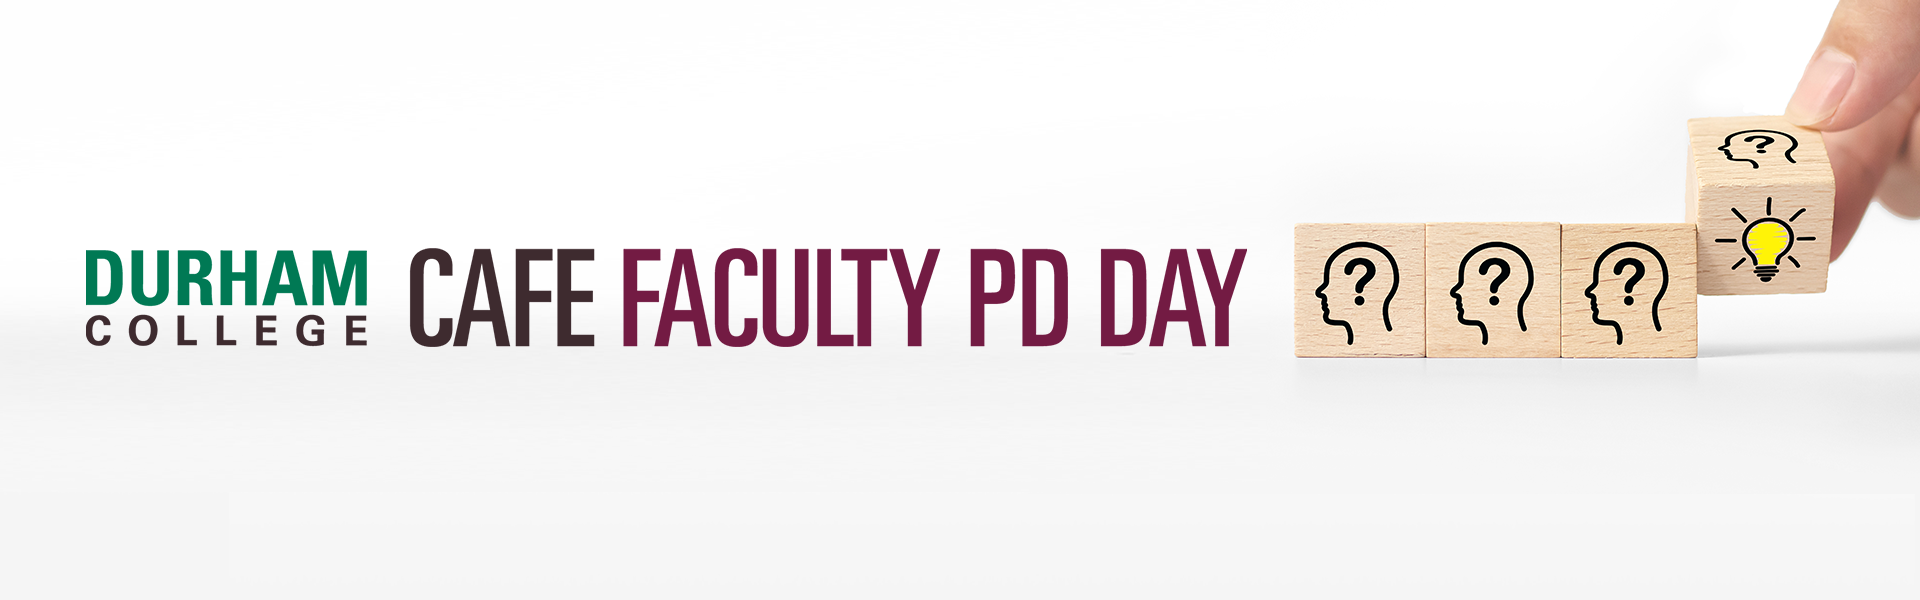 Durham College Faculty PD Day - Save the date February 24, 2021